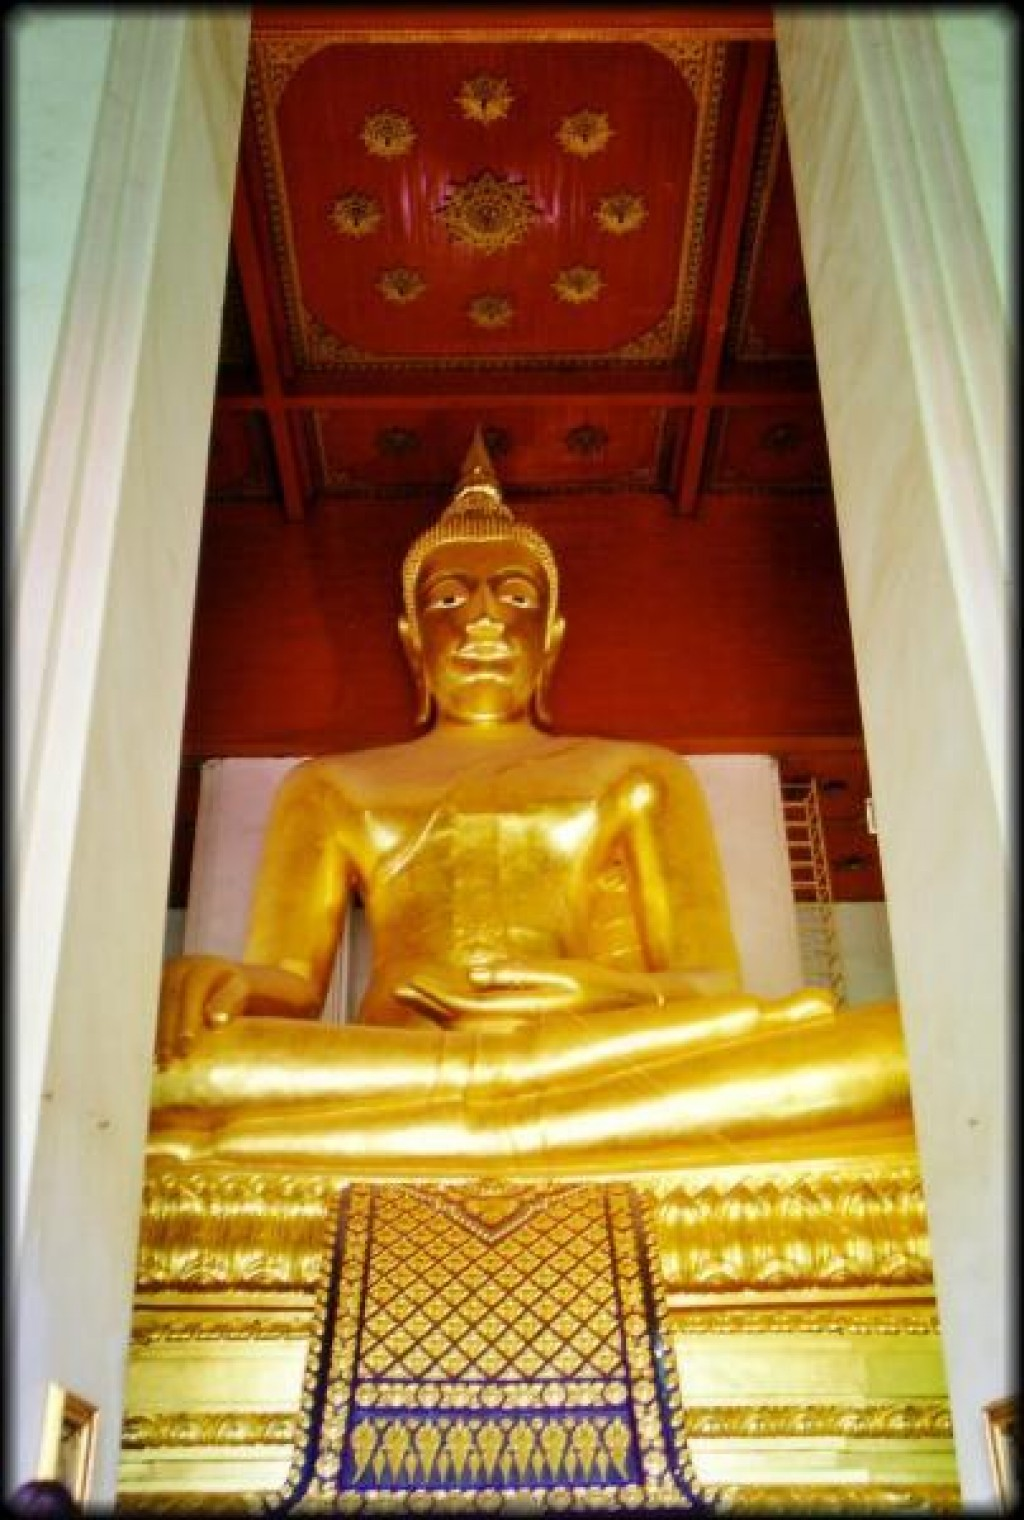 This is the largest bronze Buddha in all of Thailand, inside the Whan Phra Mongkhon Brophit.